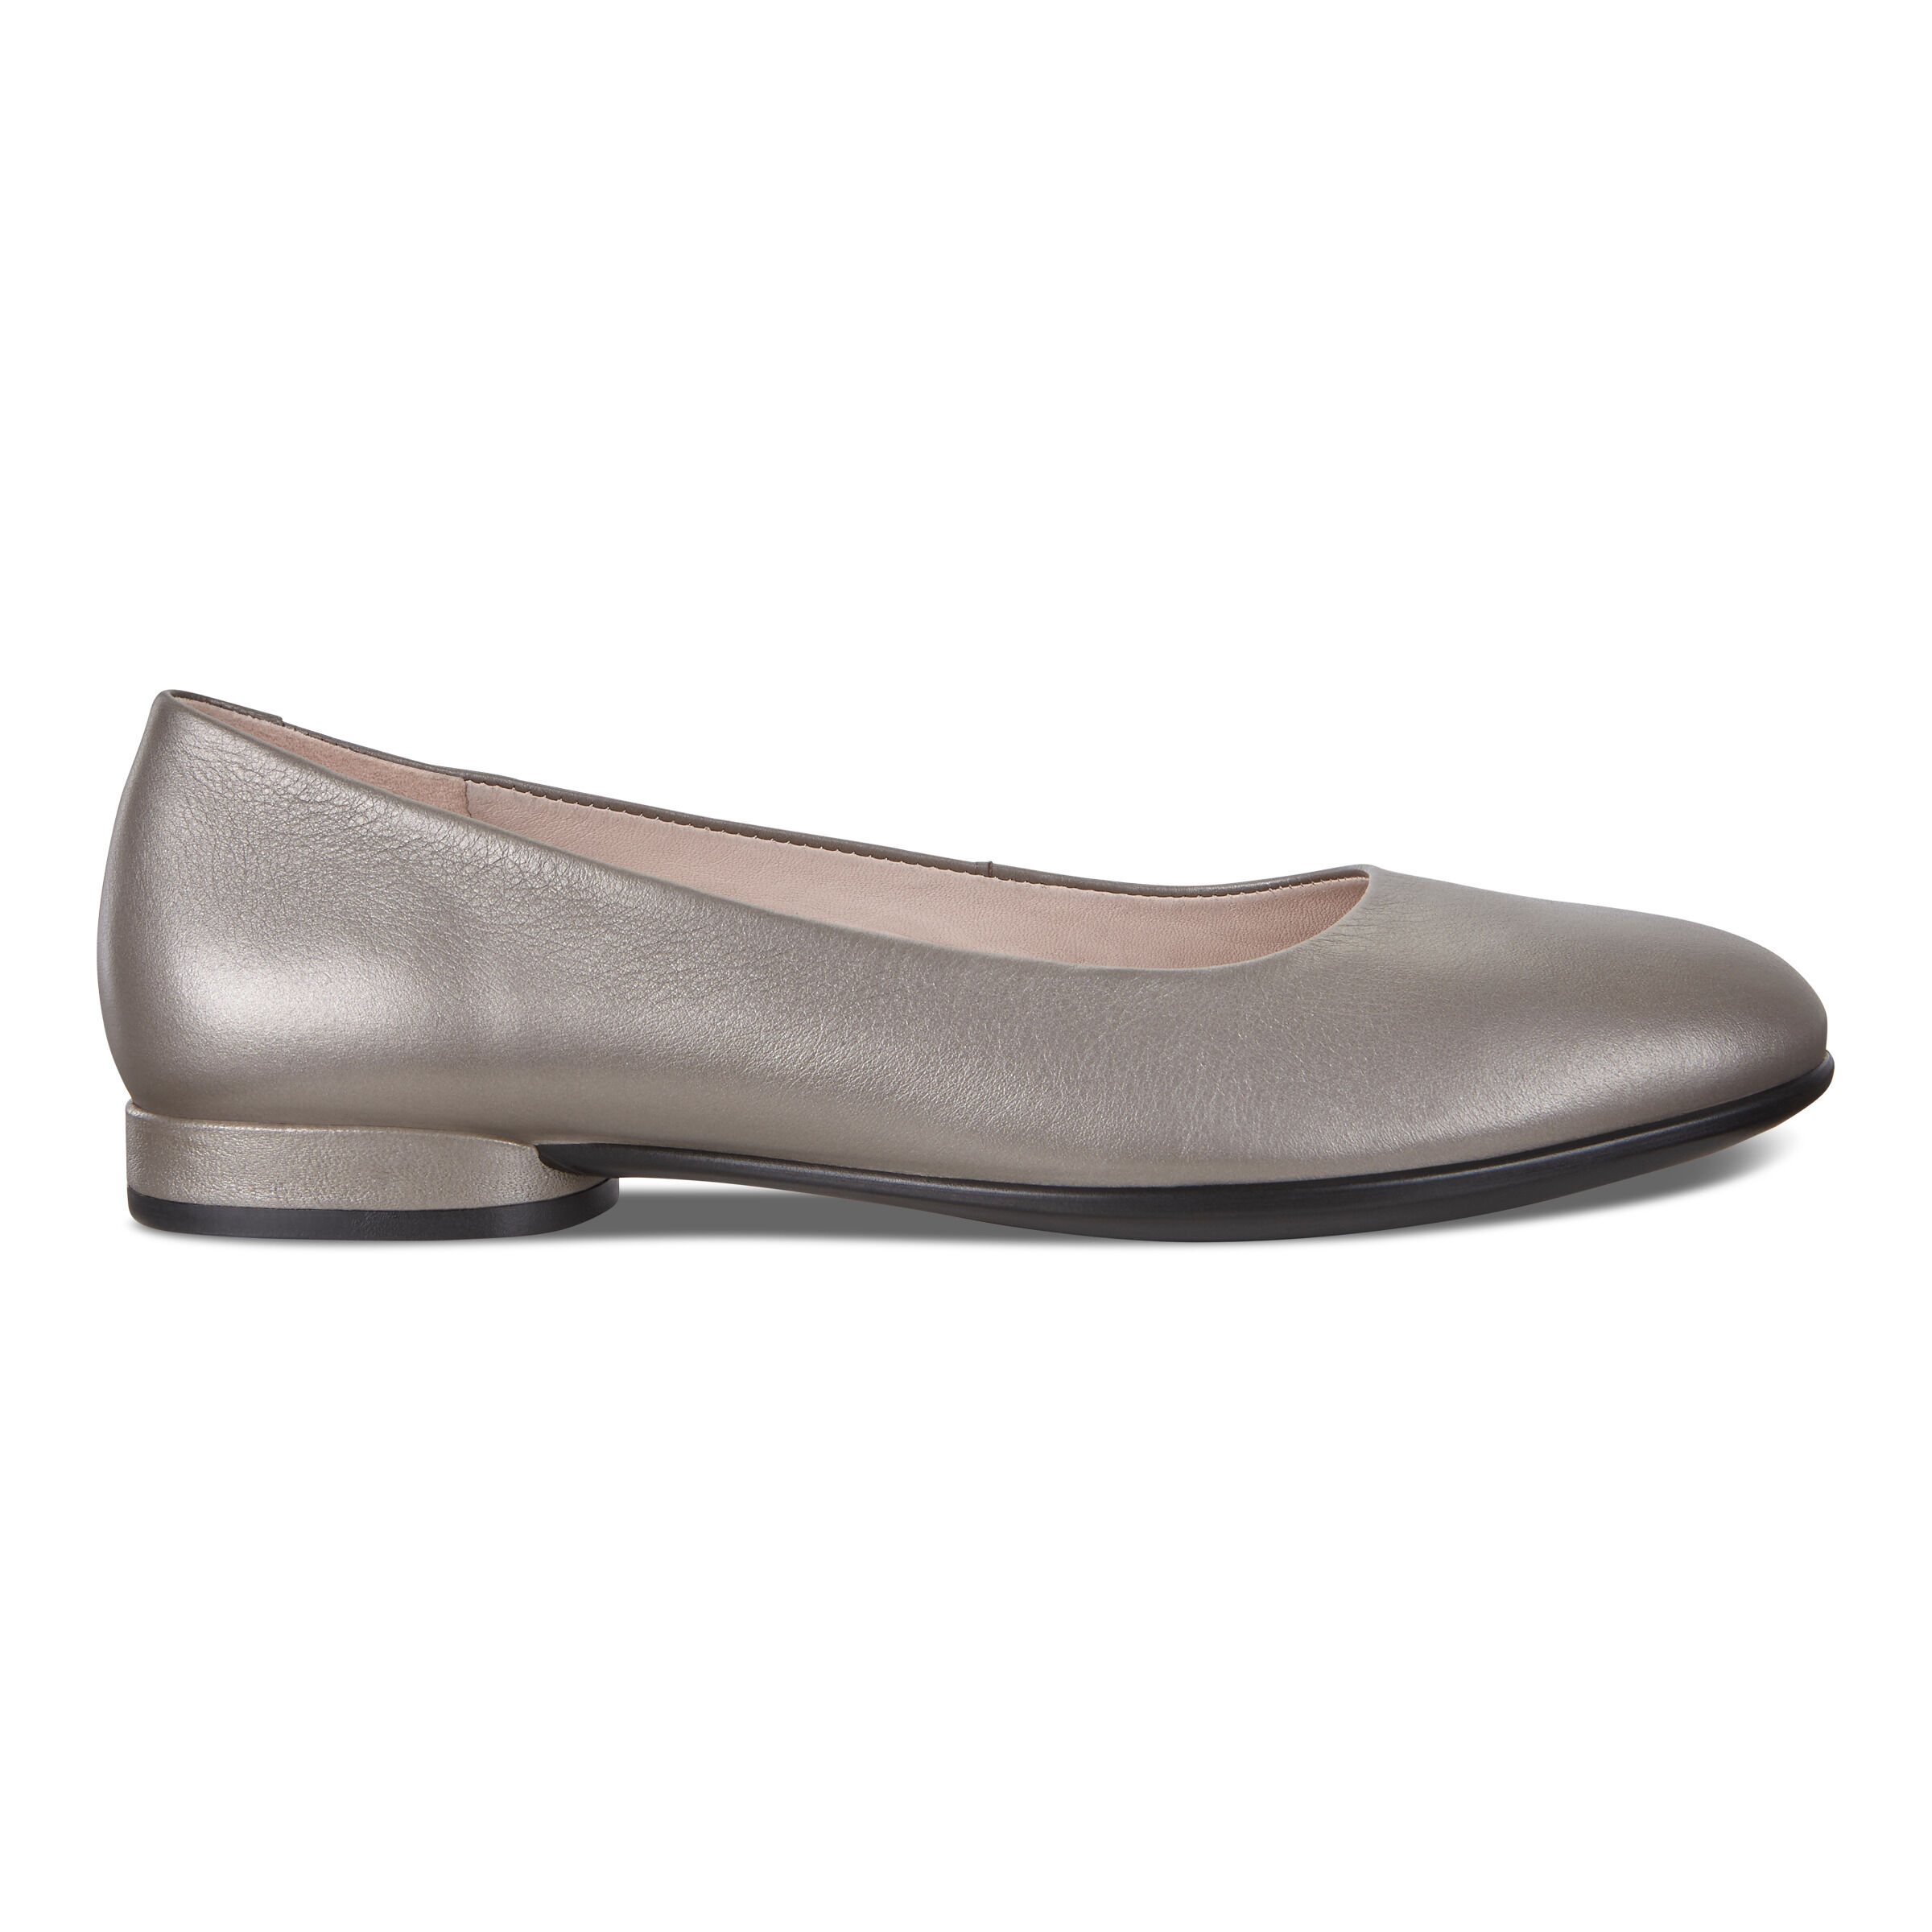 Women's Flats & Ballerinas | ECCO® Shoes